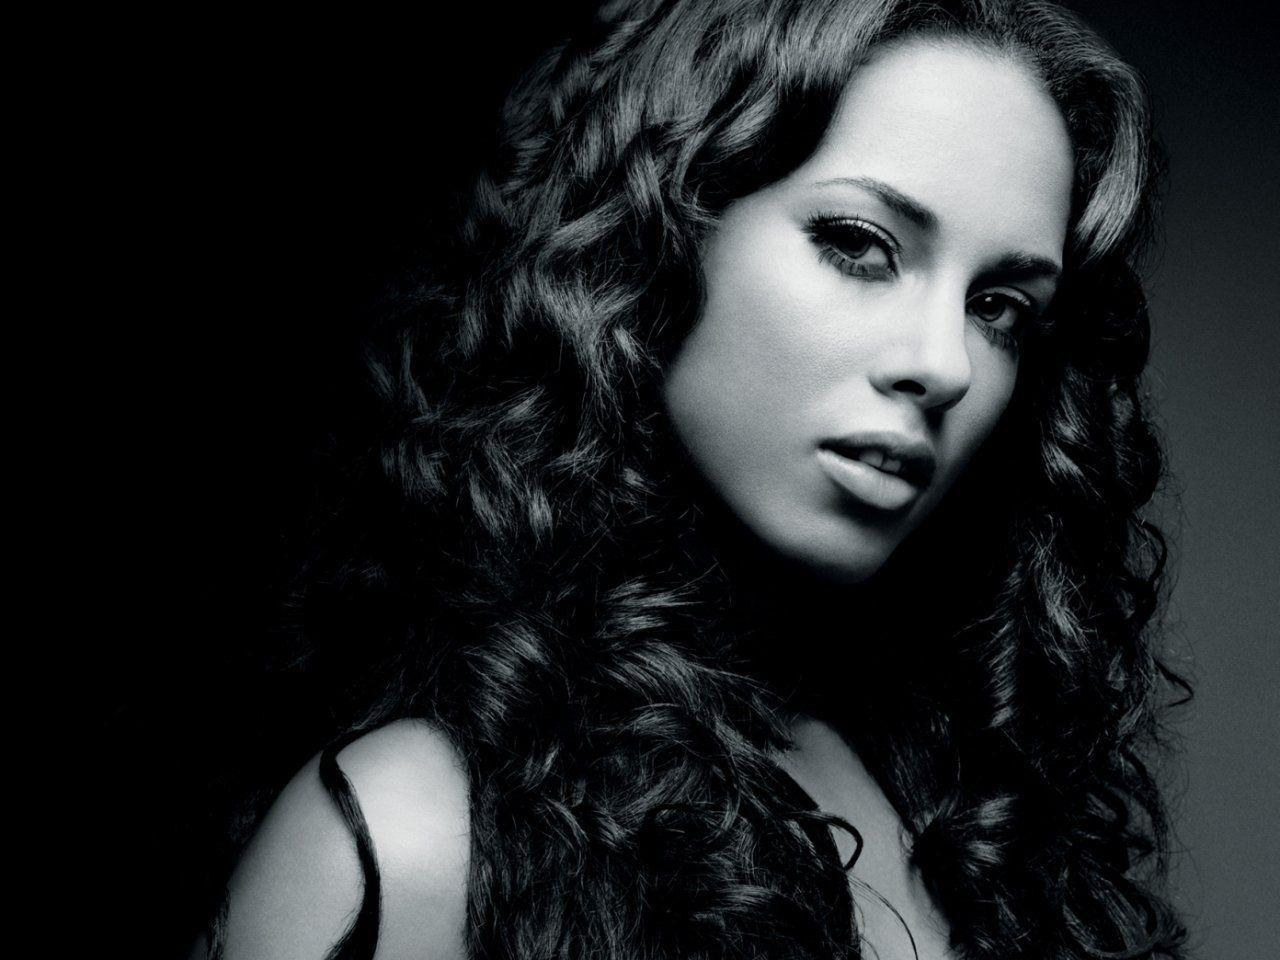 Alicia Keys Wallpaper Download | Music Wallpapers Gallery | PC ...